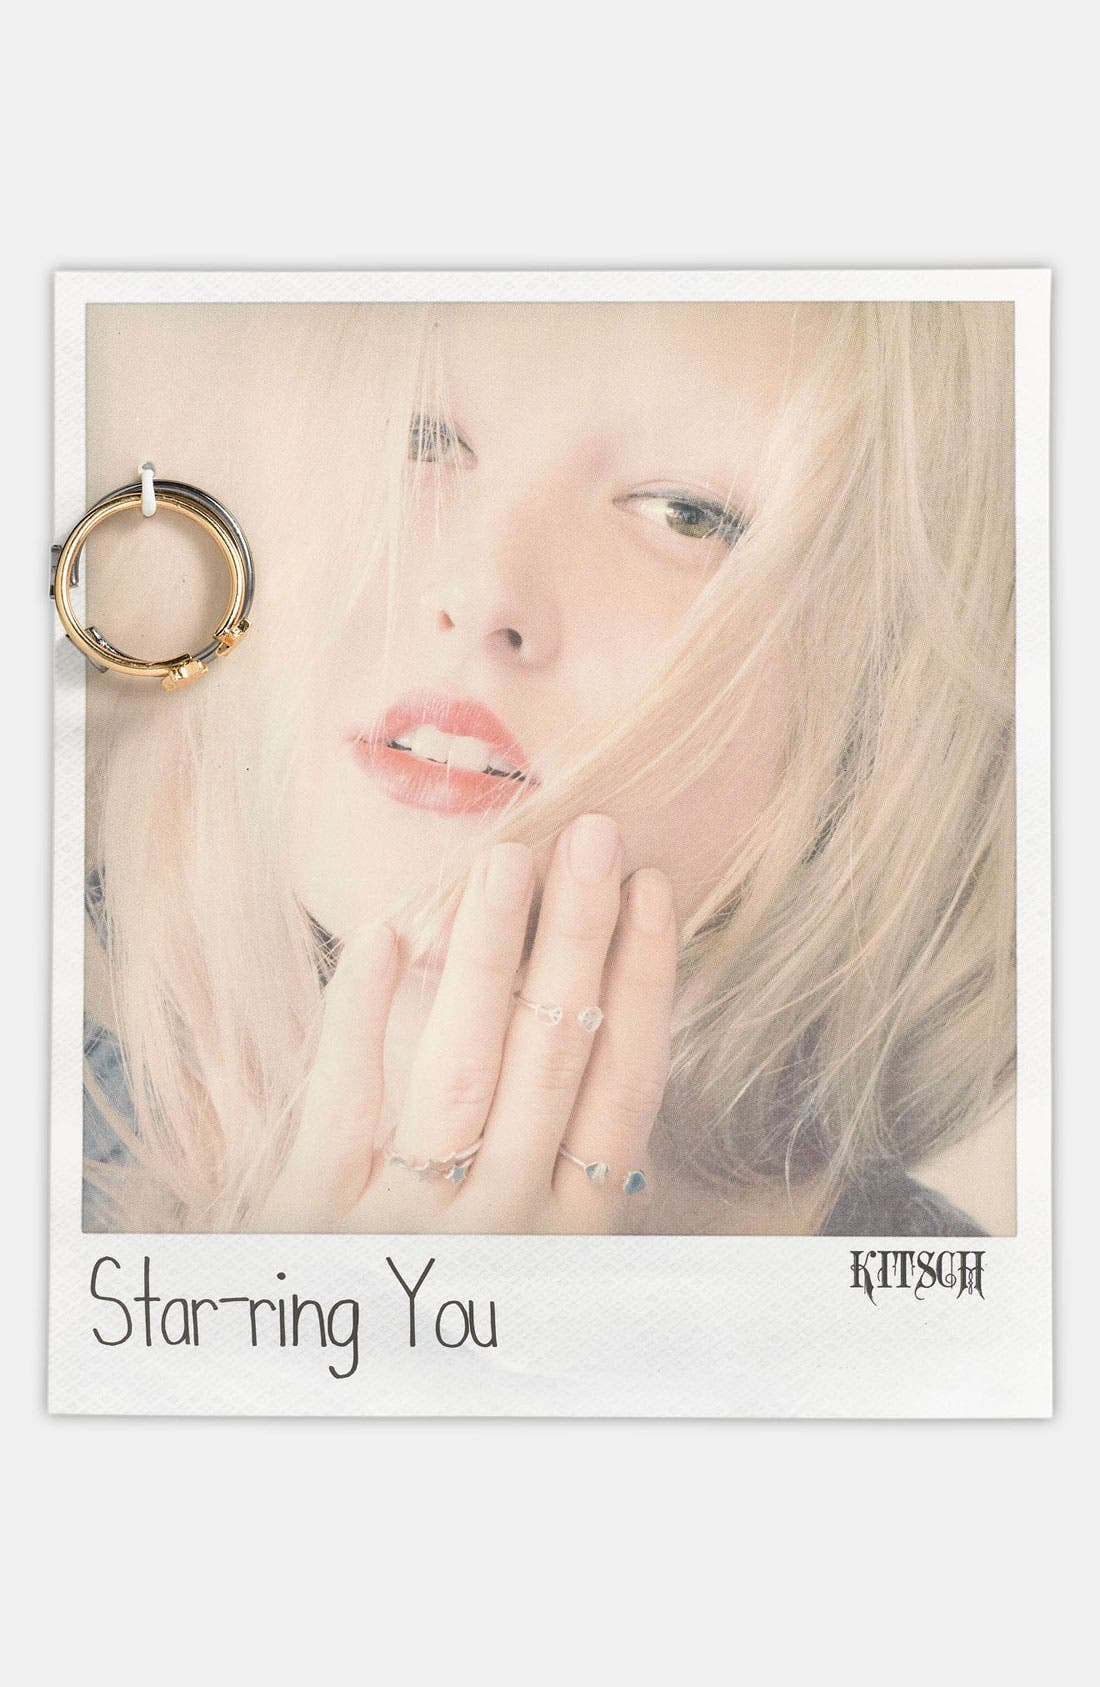 Main Image - Kitsch 'Star-ring You' Adjustable Rings